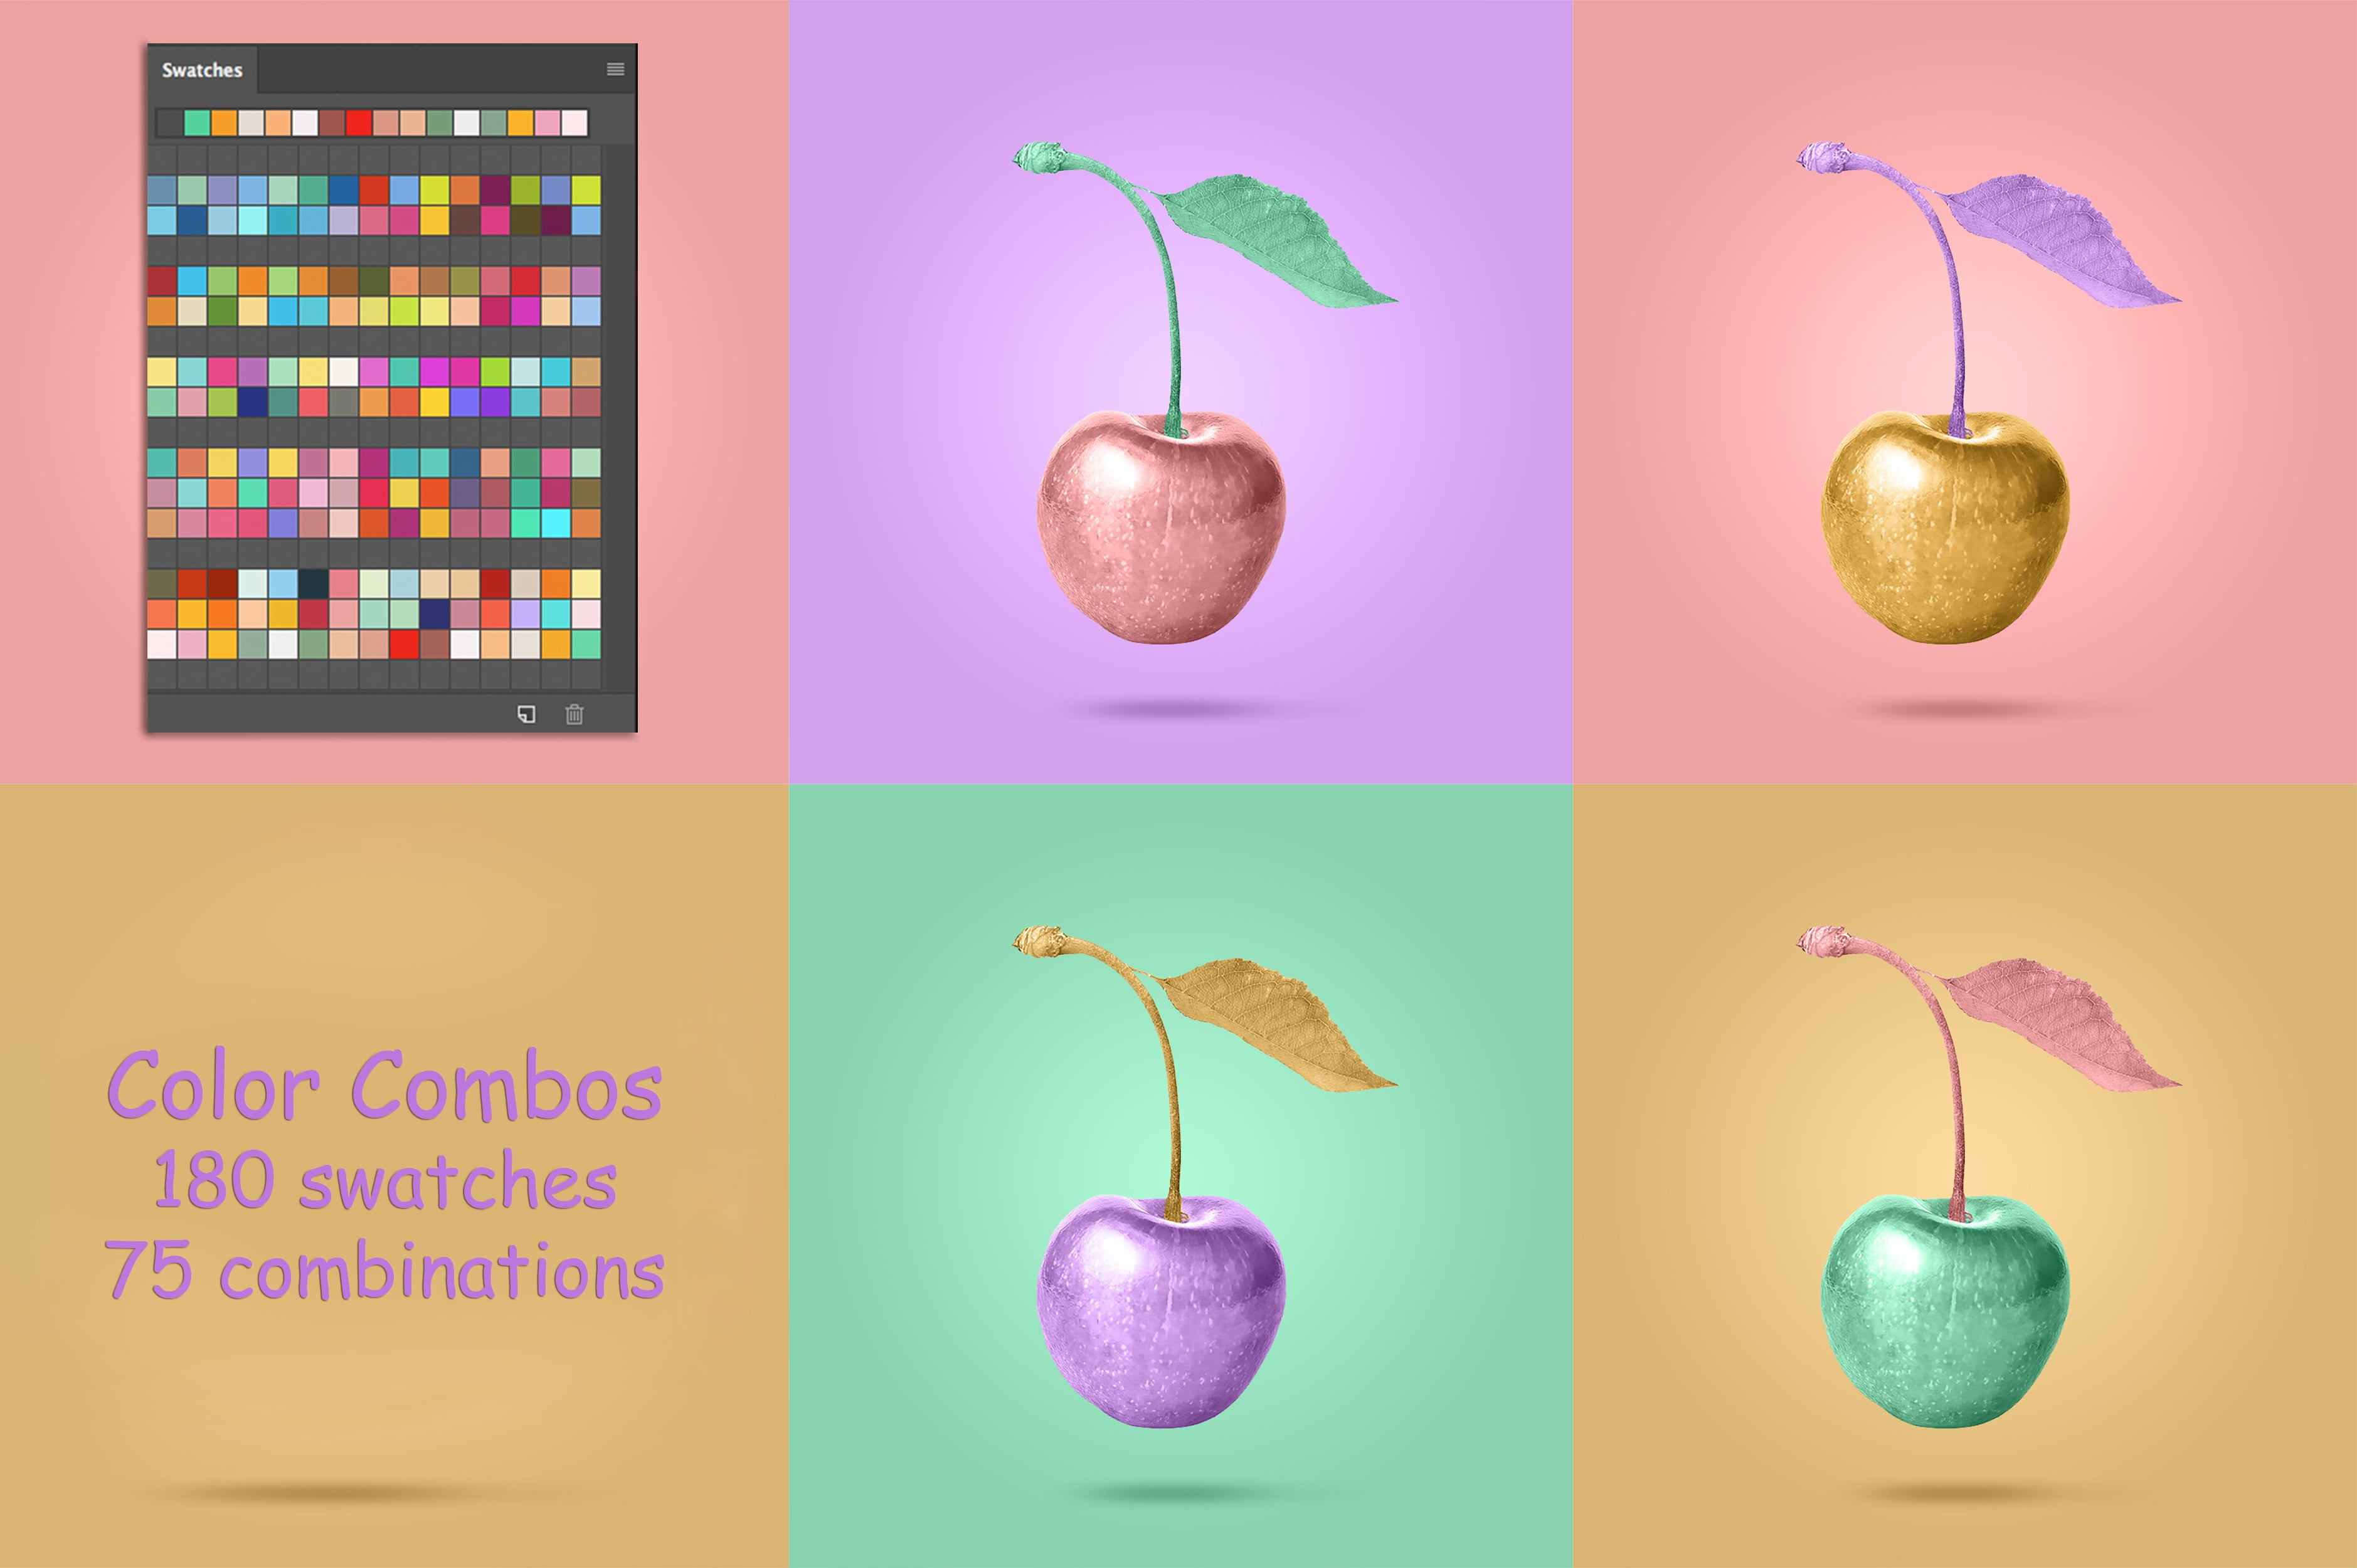 Digital Painting Assets - almost 3000 Elements - Color Combinations